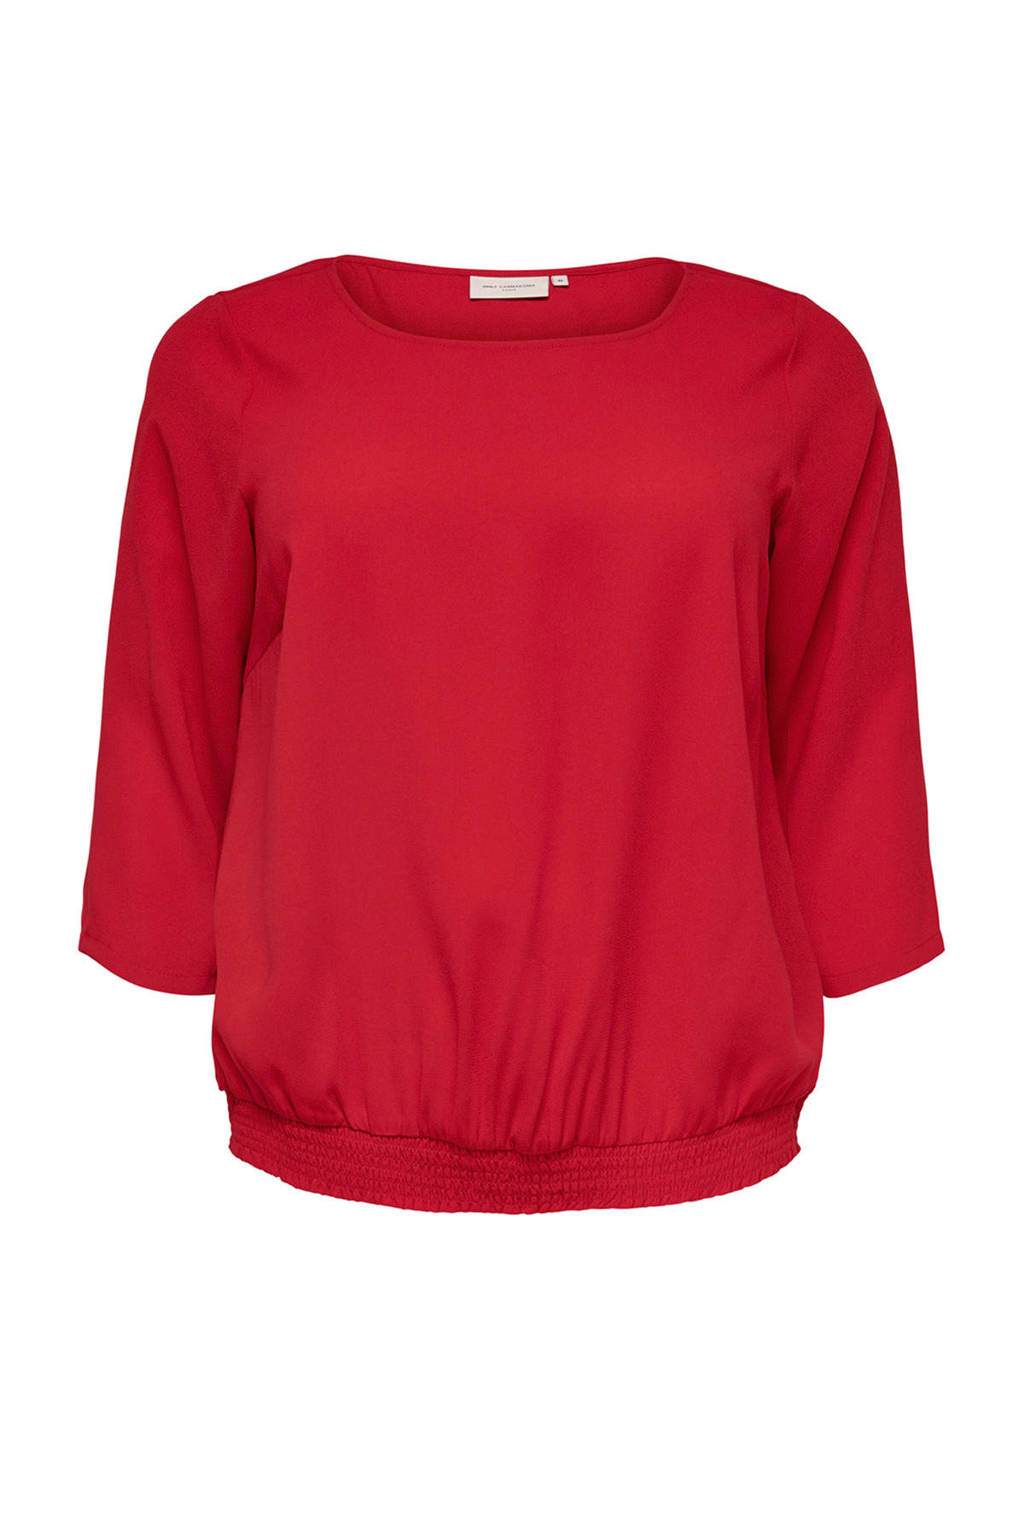 ONLY carmakoma top met driekwart mouw rood, Rood